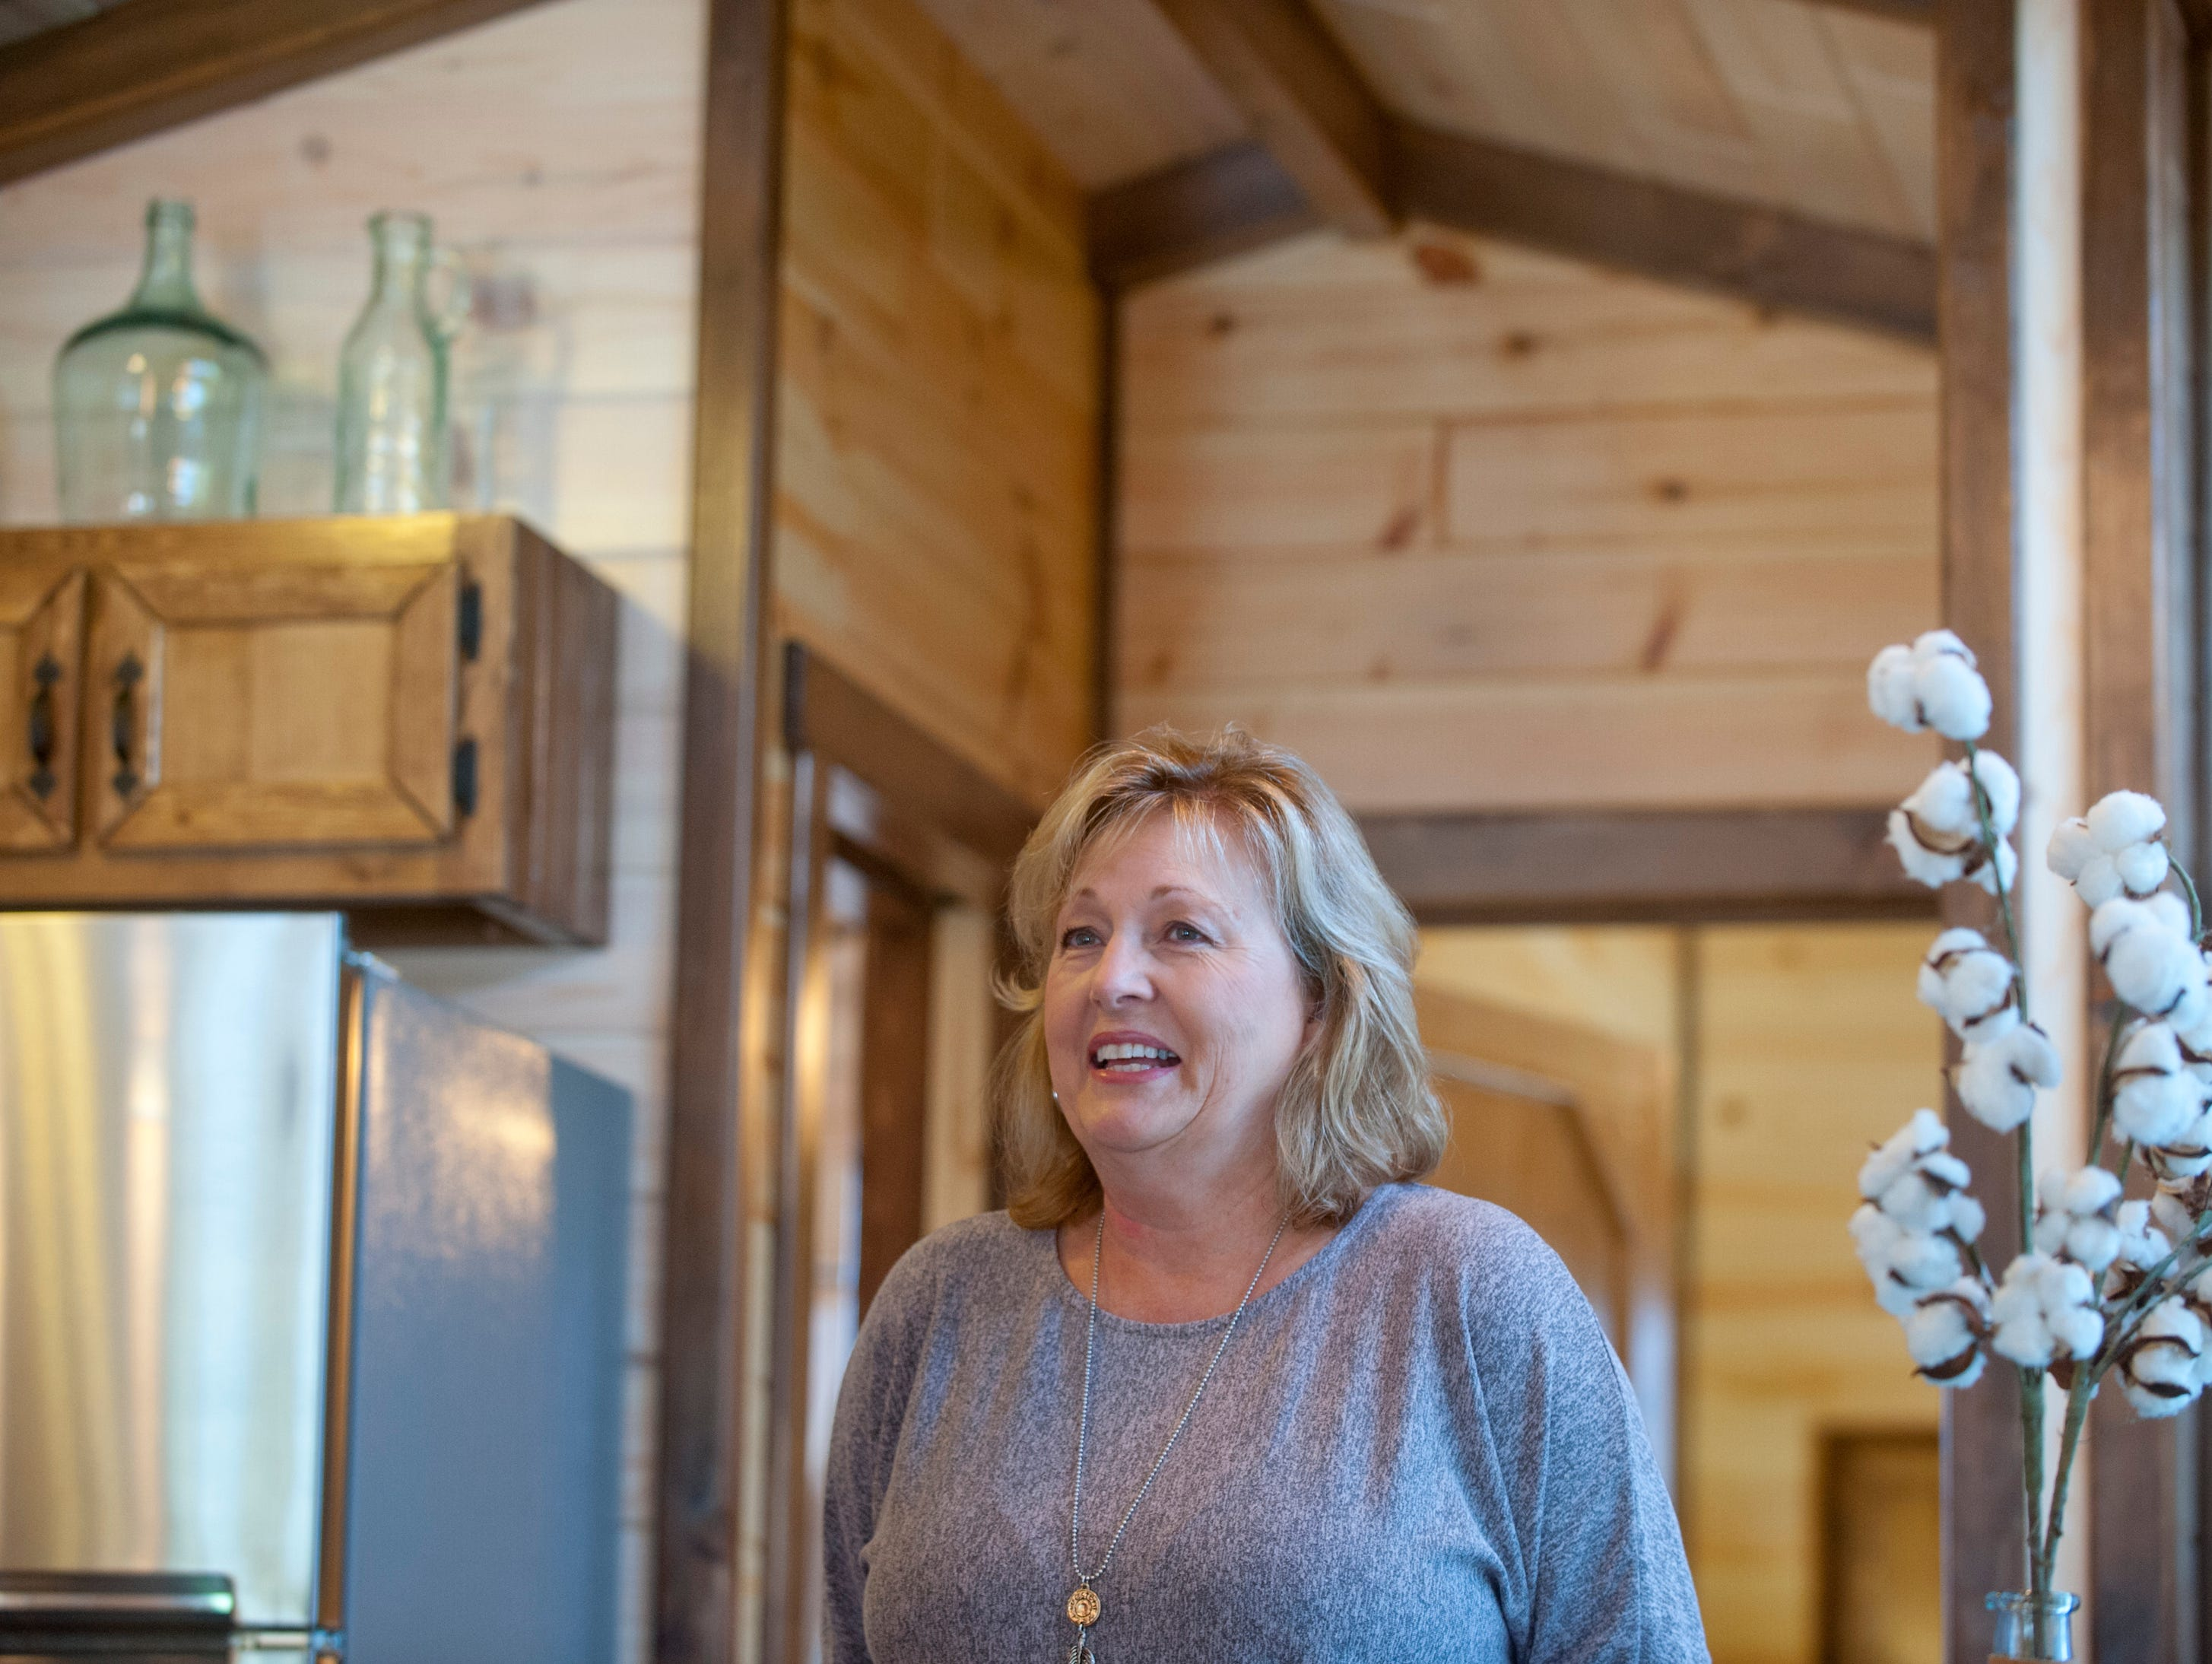 Co-owner Pamela White stands in the kitchen of the home.September 10, 2018